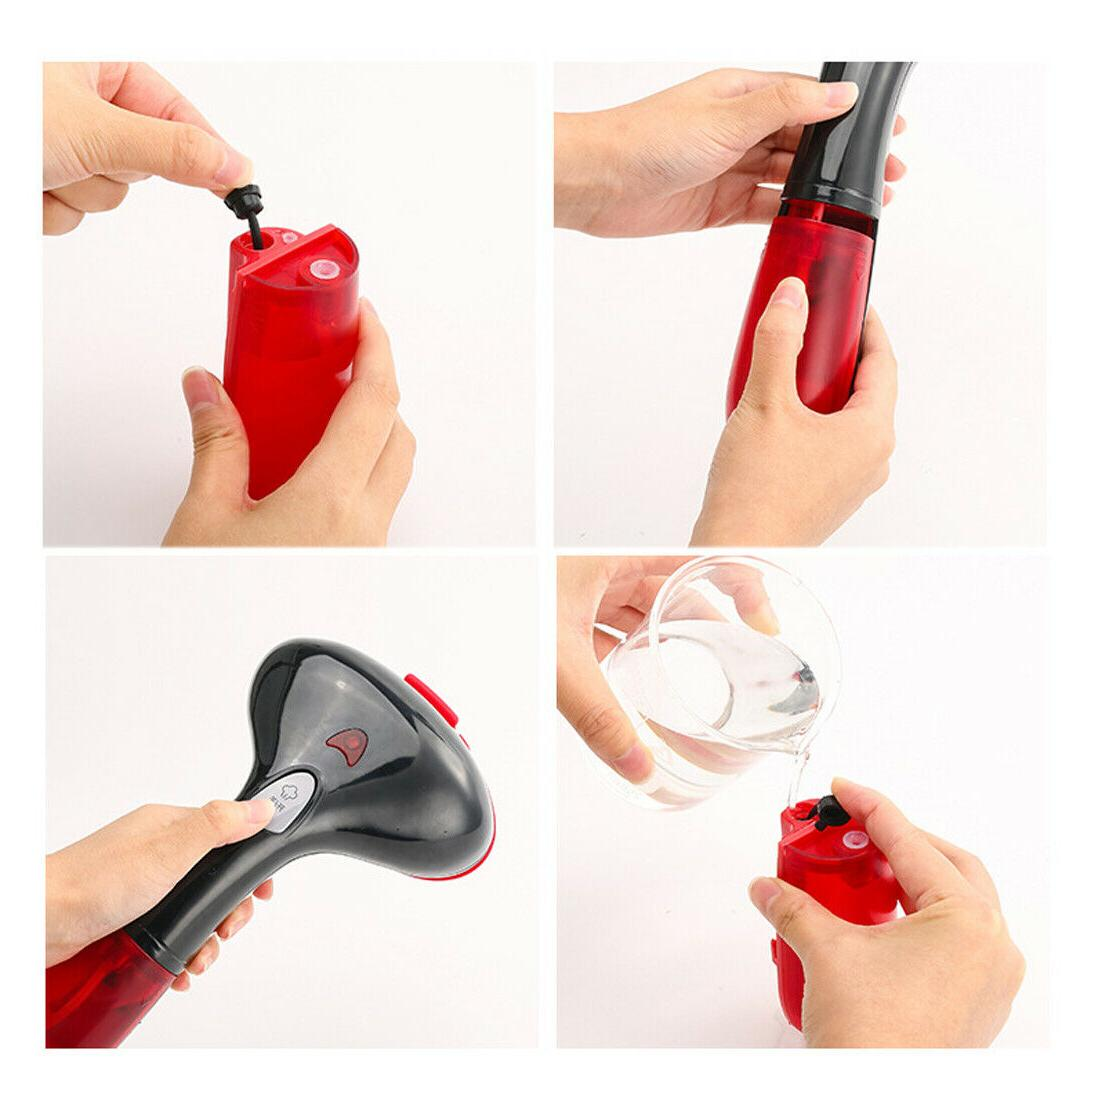 Portable Steam Home Electric Fabric Clothes Steamer